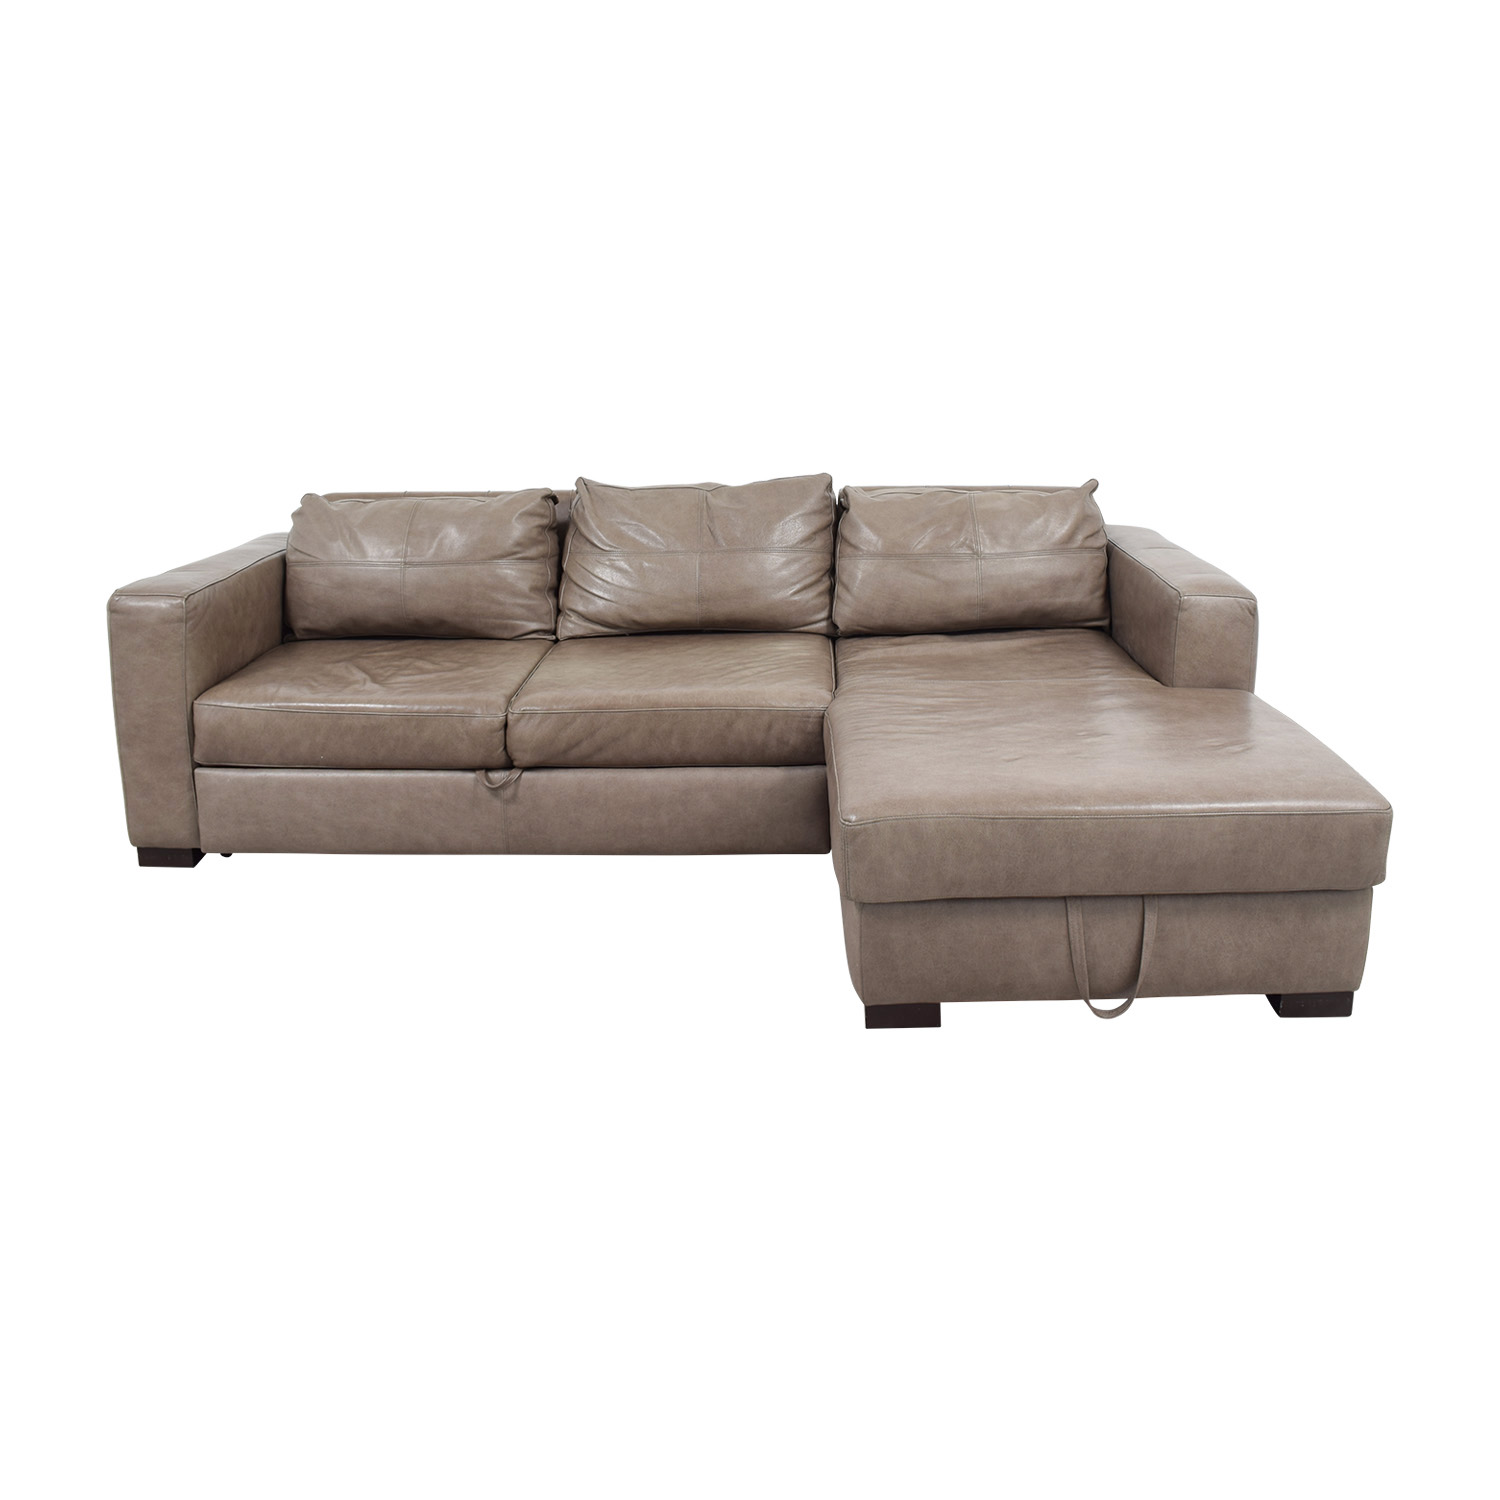 Buy sofa quality used furniture Sleeper sofa prices